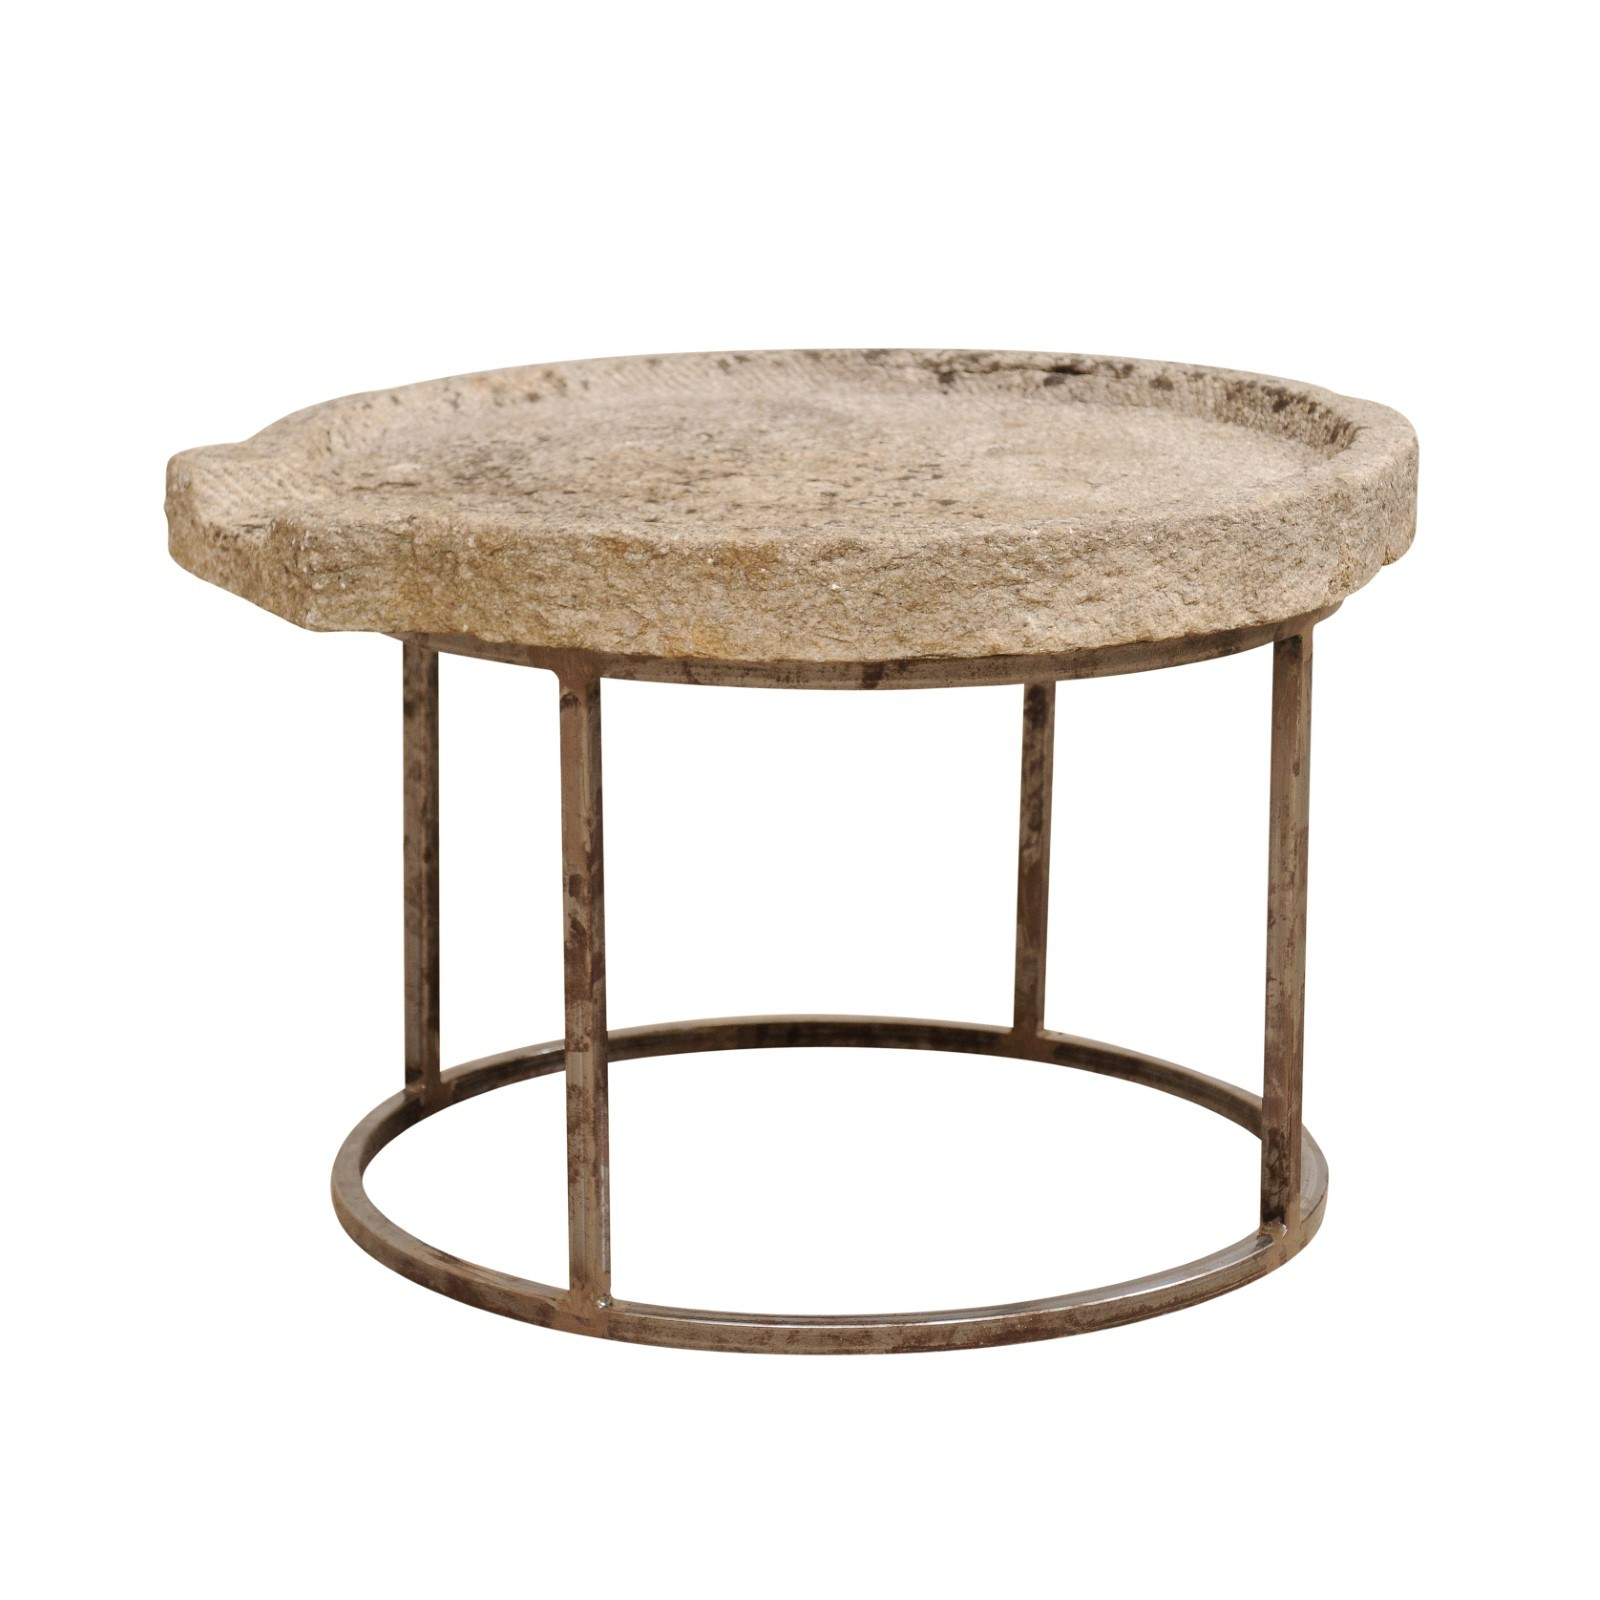 Antique Stone Olive Oil Trough Table